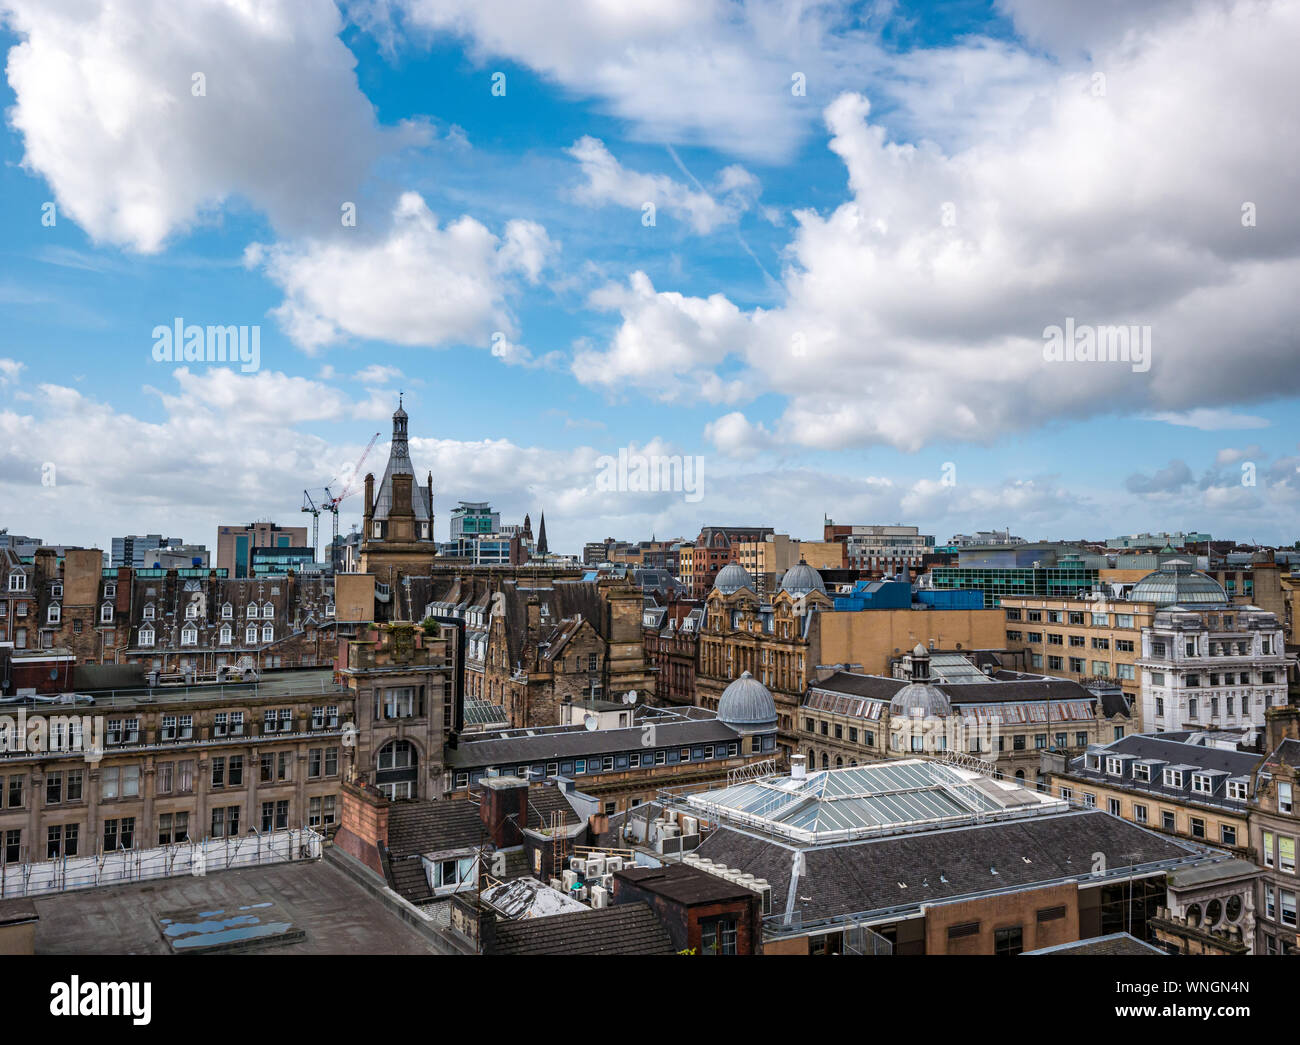 View of city skyline from The Lighthouse tower, Mitchell Street, Glasgow, Scotland, UK Stock Photo